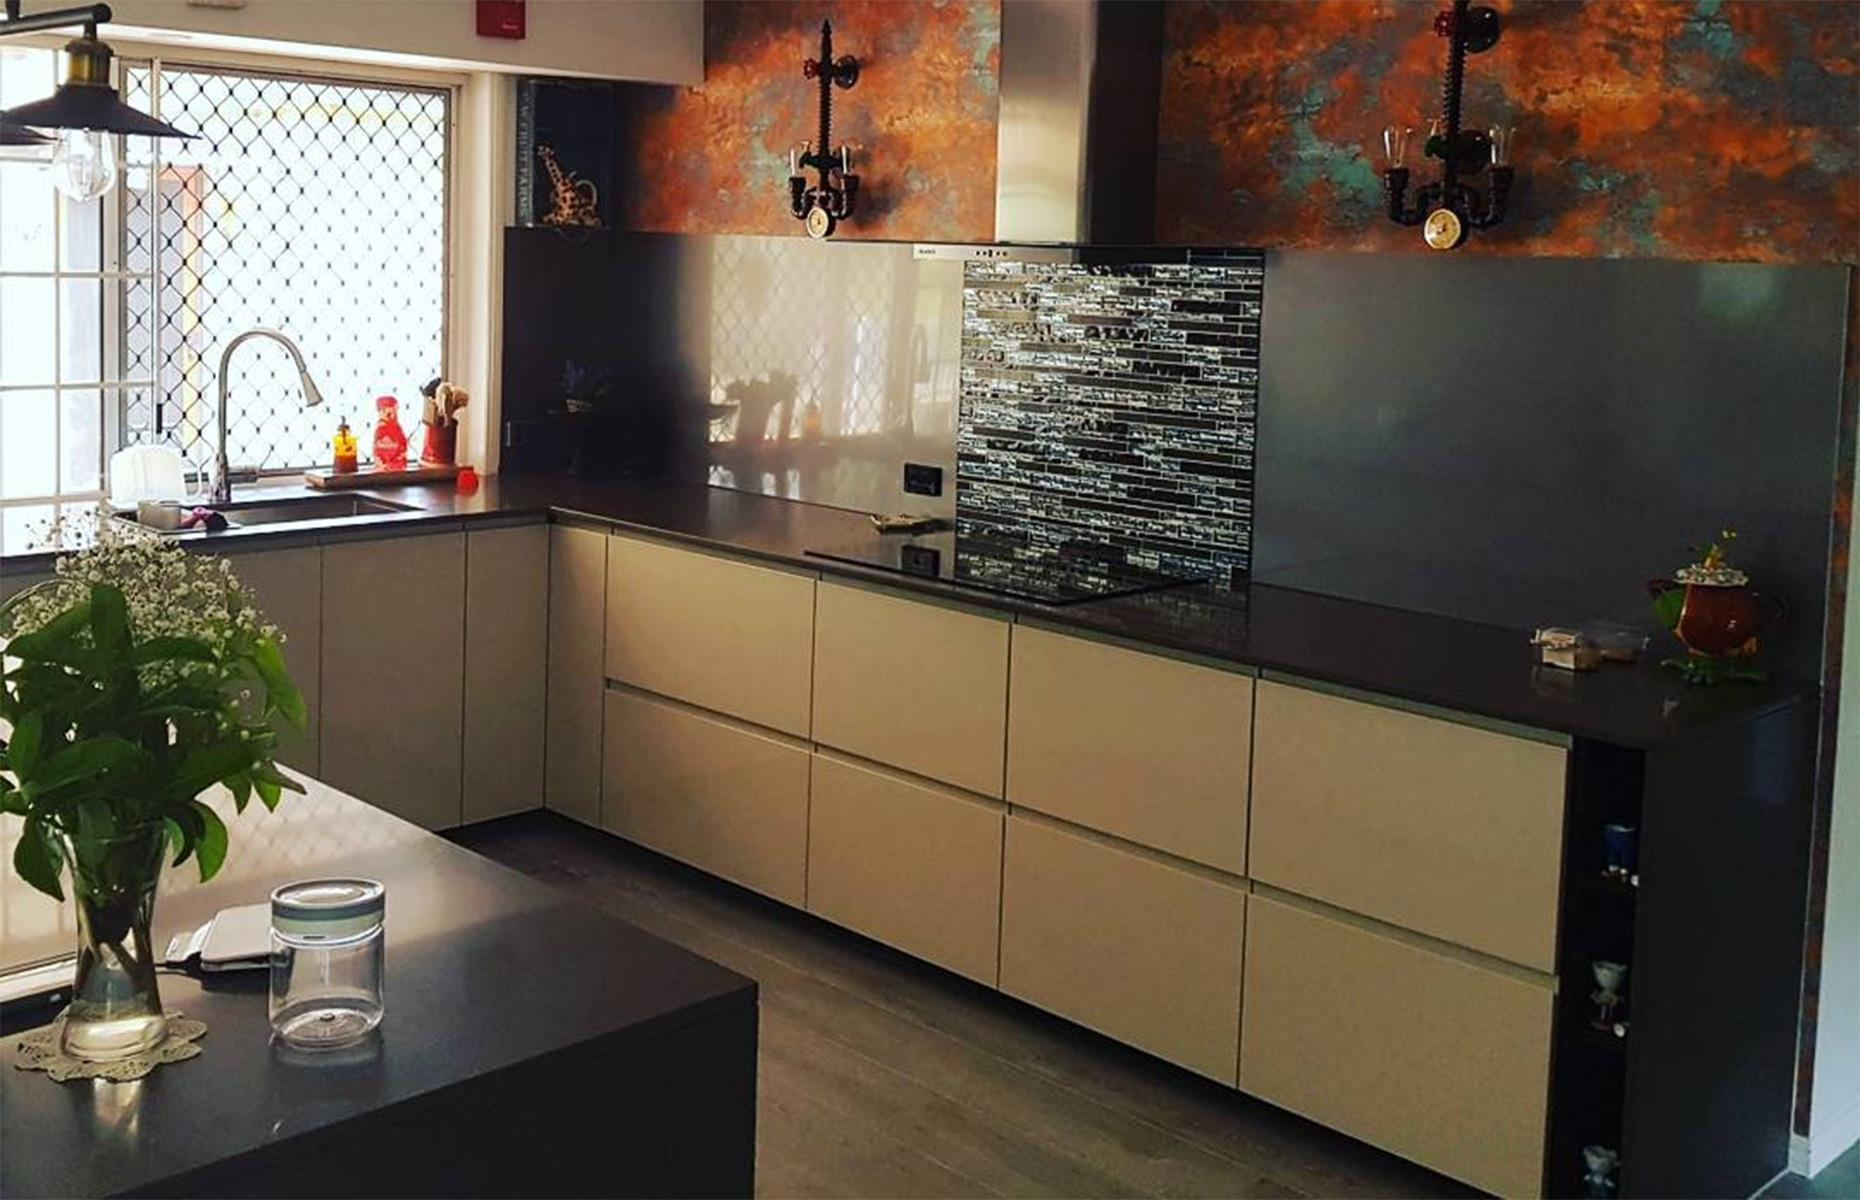 How to give your IKEA kitchen a designer makeover  loveproperty.com